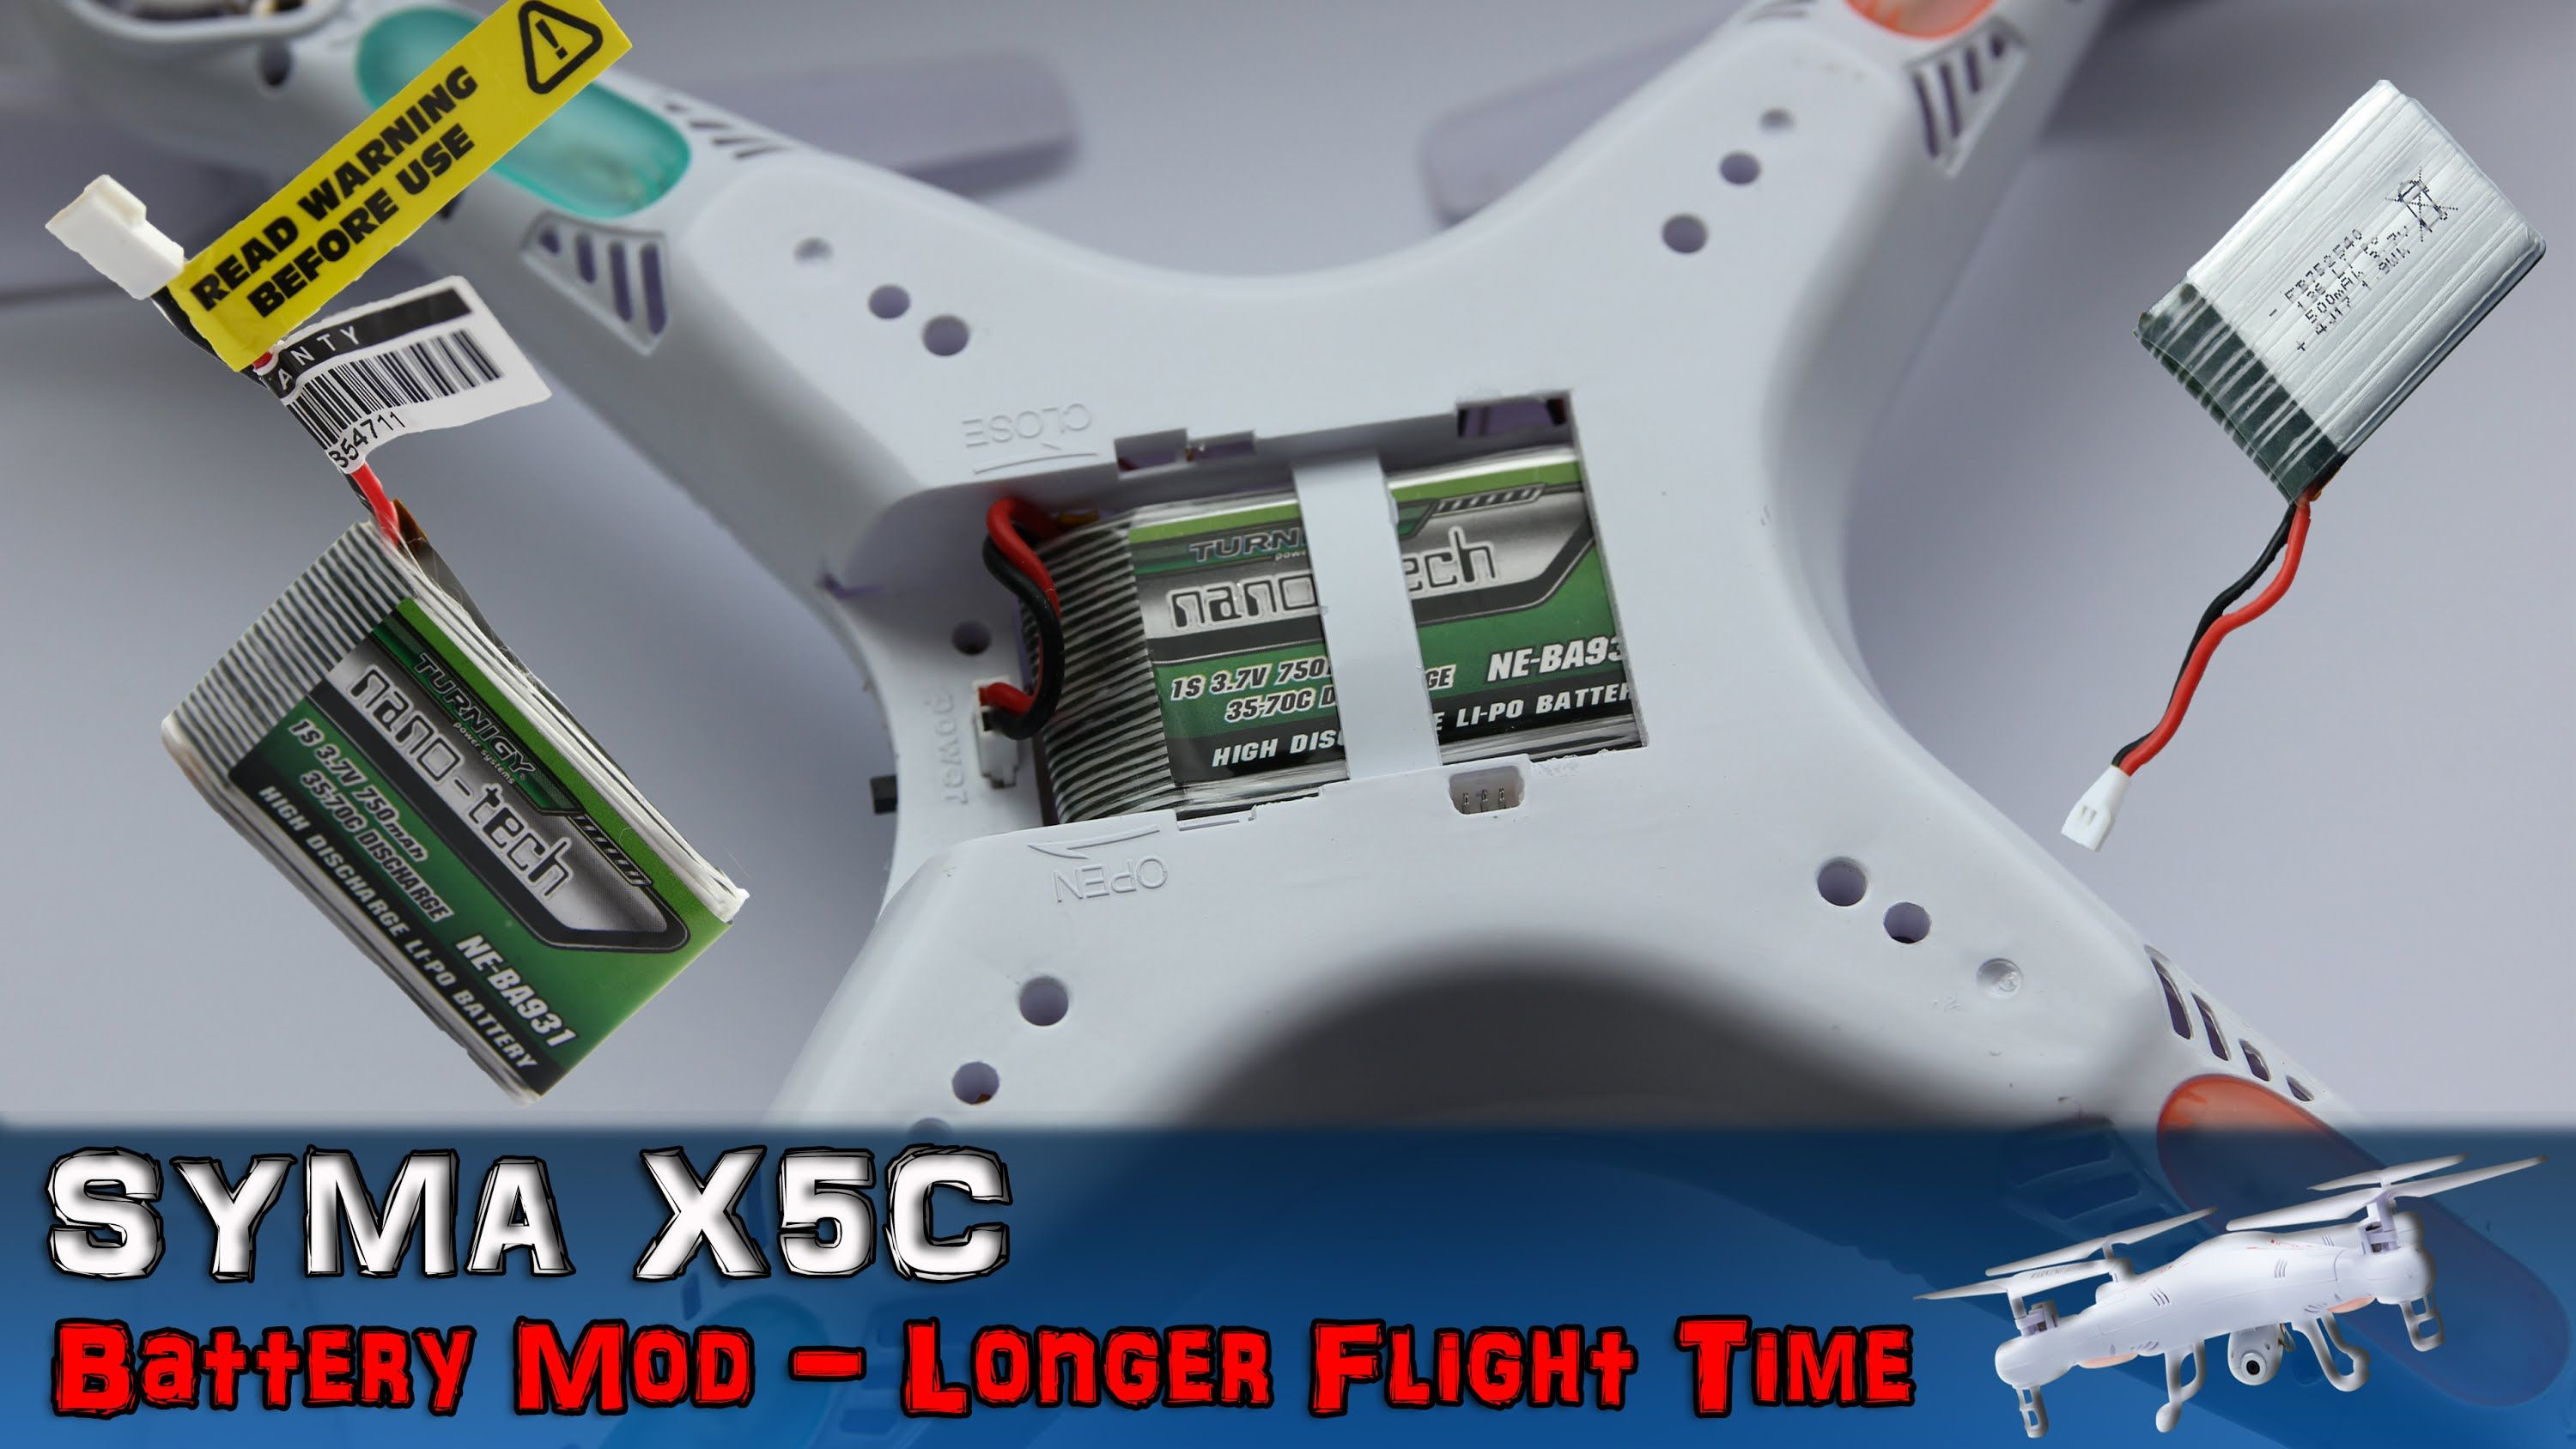 Syma X5C - Battery Mod Longer Flight Time To 15 Min  Hack Step by